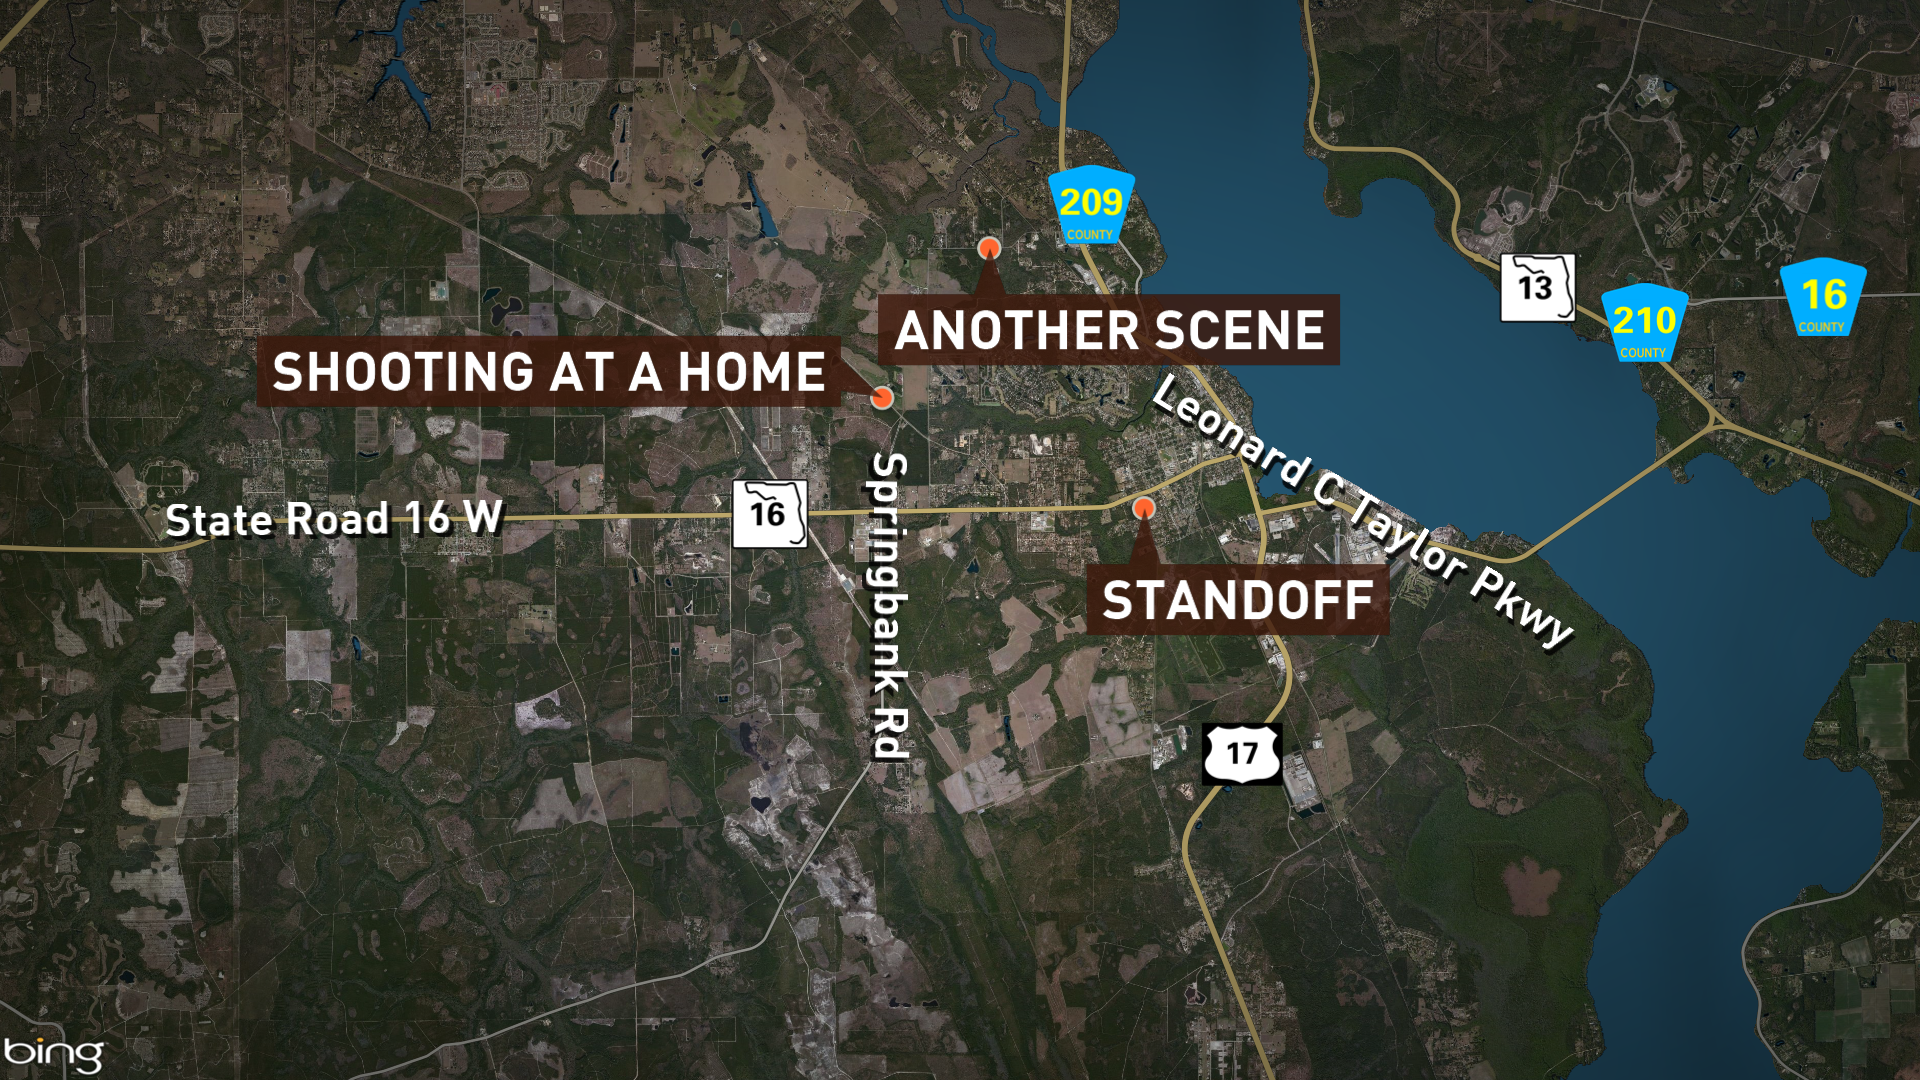 2 women, 1 man slain in Green Cove Springs; suspect at large